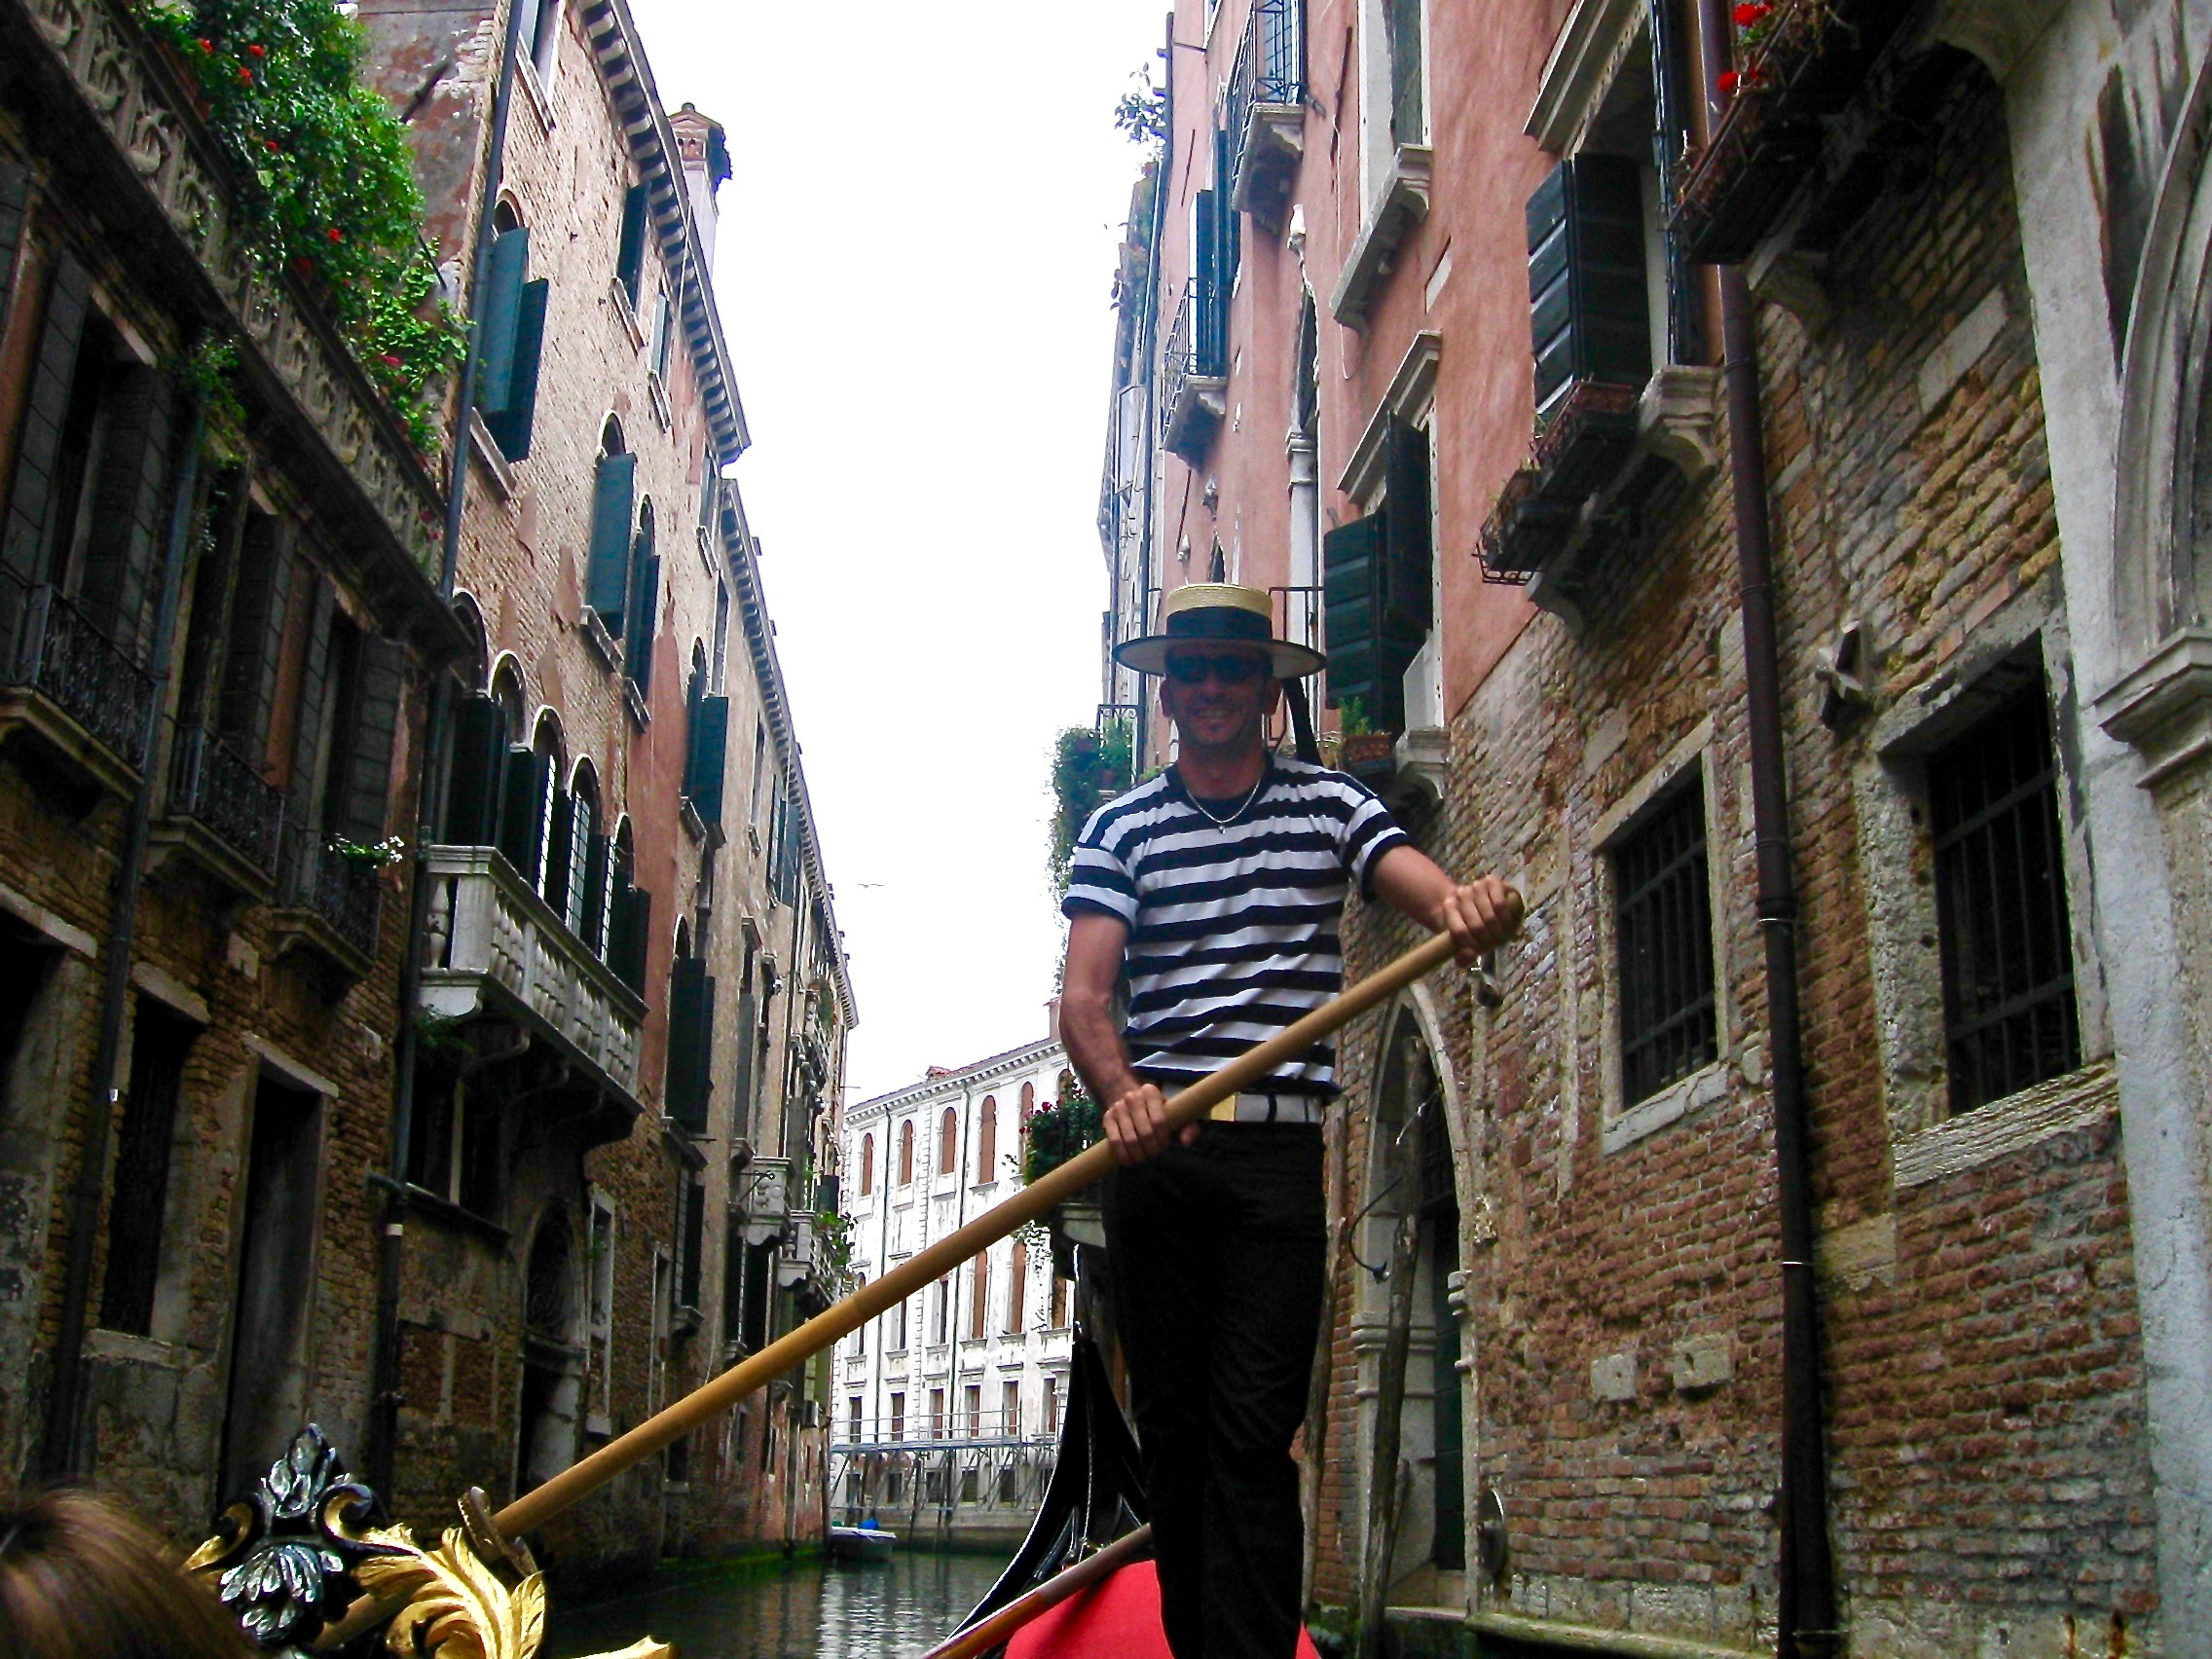 Our Gondolier on the one of the smaller canals in Venice